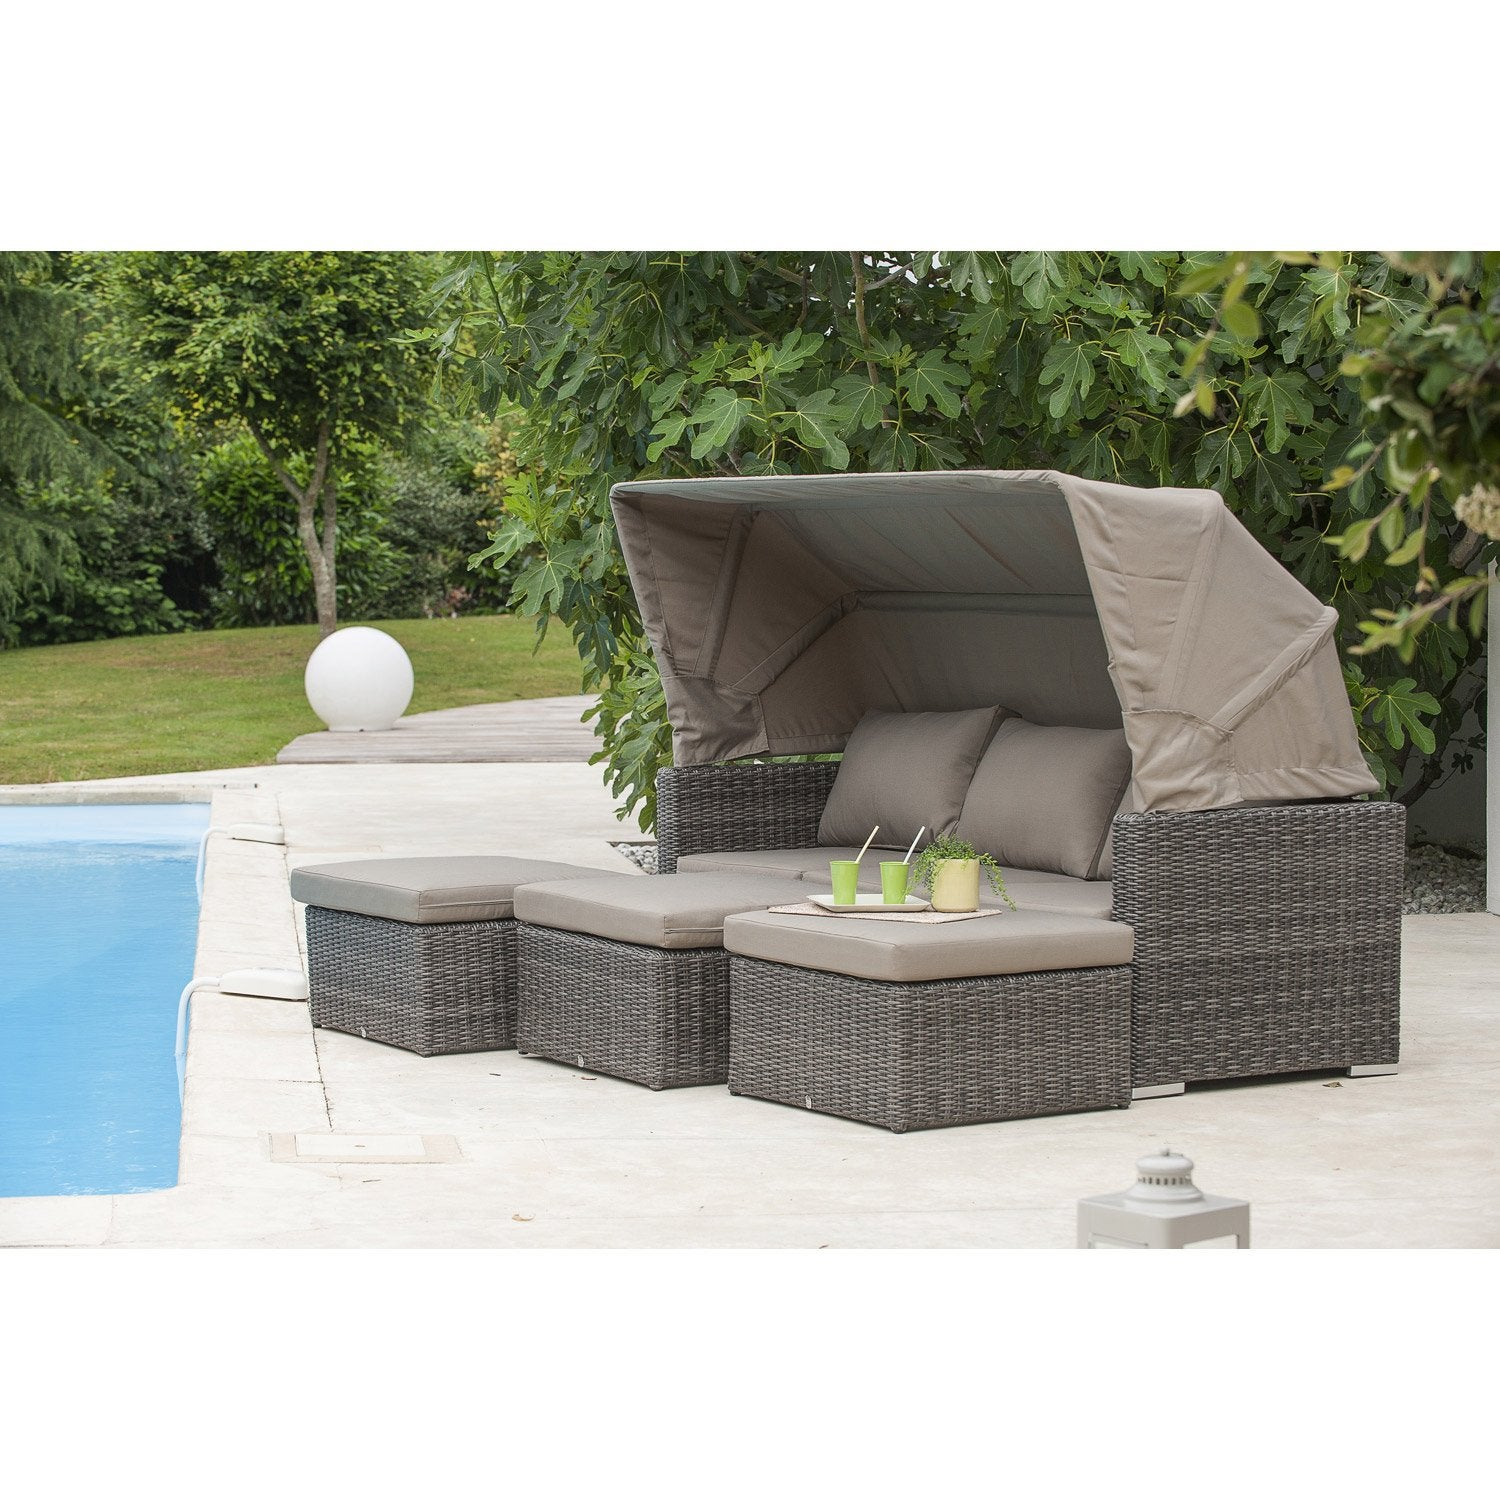 Salon bas de jardin caleche r sine tress e gris anthracite for Salon de jardin fly